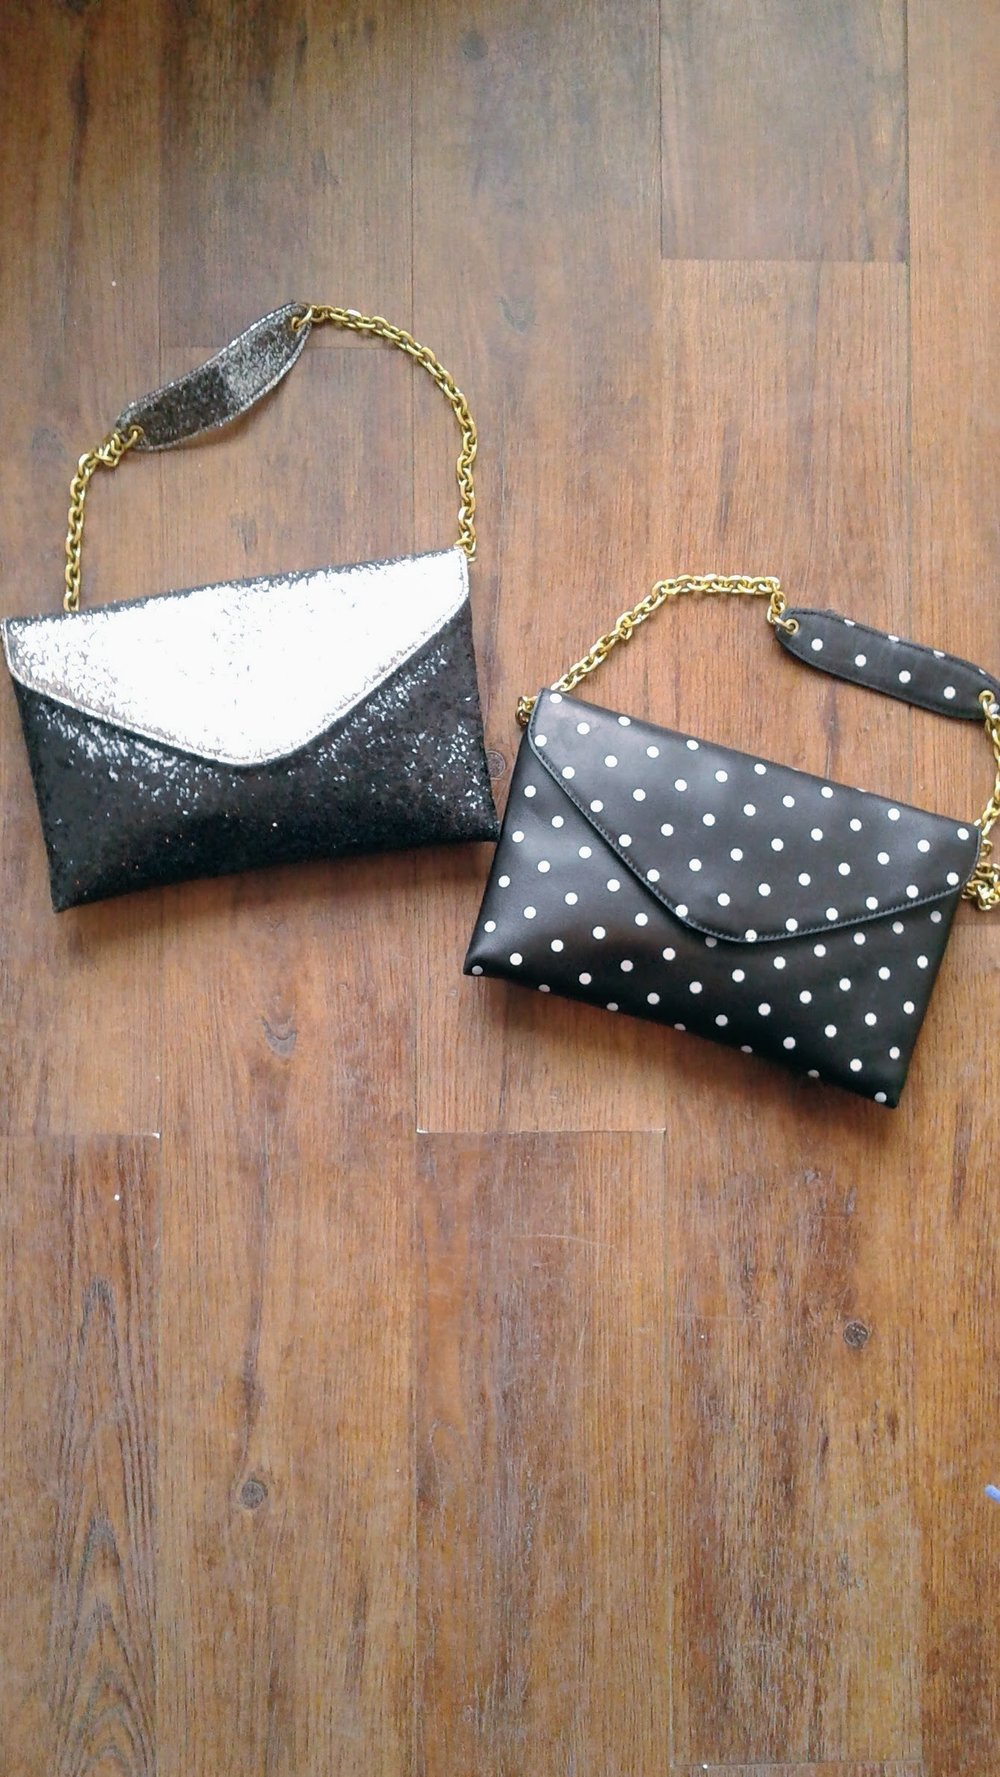 J Crew sprakley purse, $38. J Crew dots purse, $32